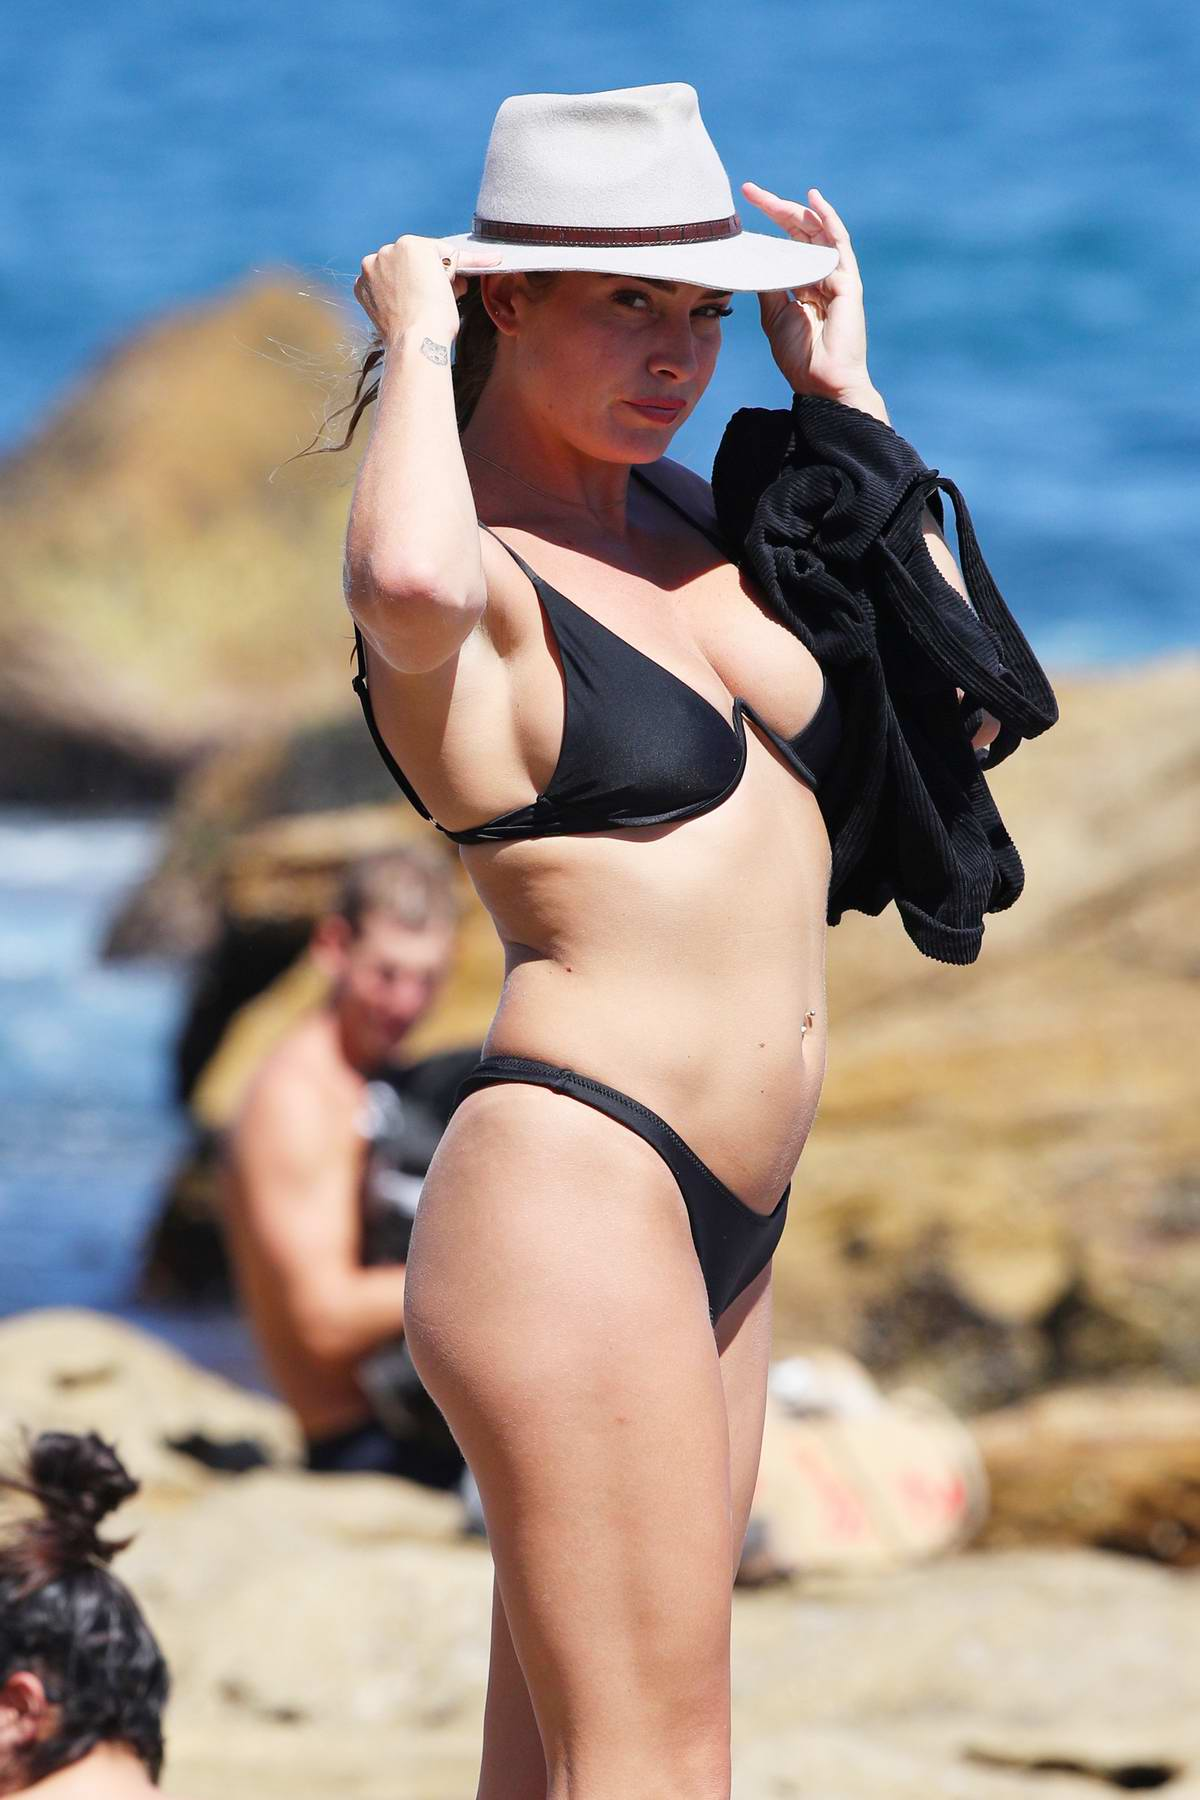 Lisa Clark cools off in a black bikini at Bondi beach in Sydney, Australia